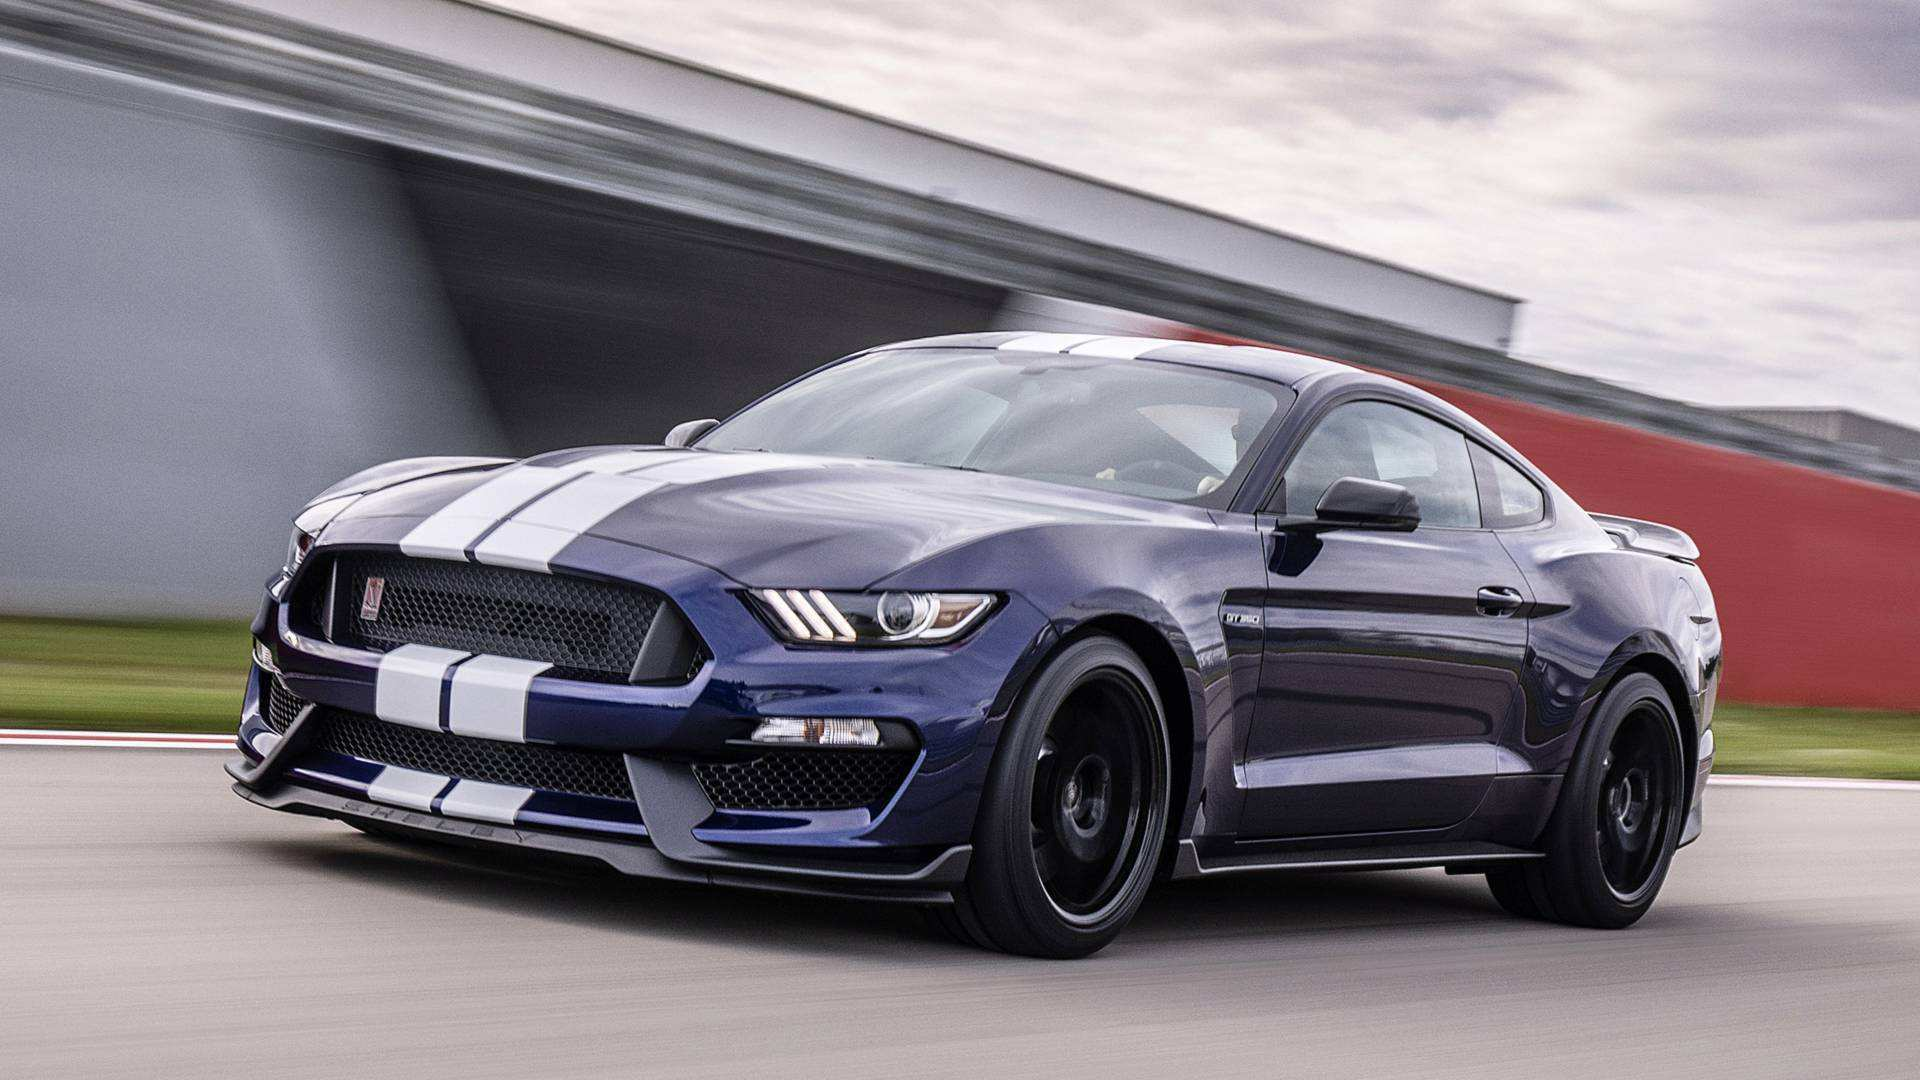 79 Best Review 2019 Ford Gt Mustang Images with 2019 Ford Gt Mustang